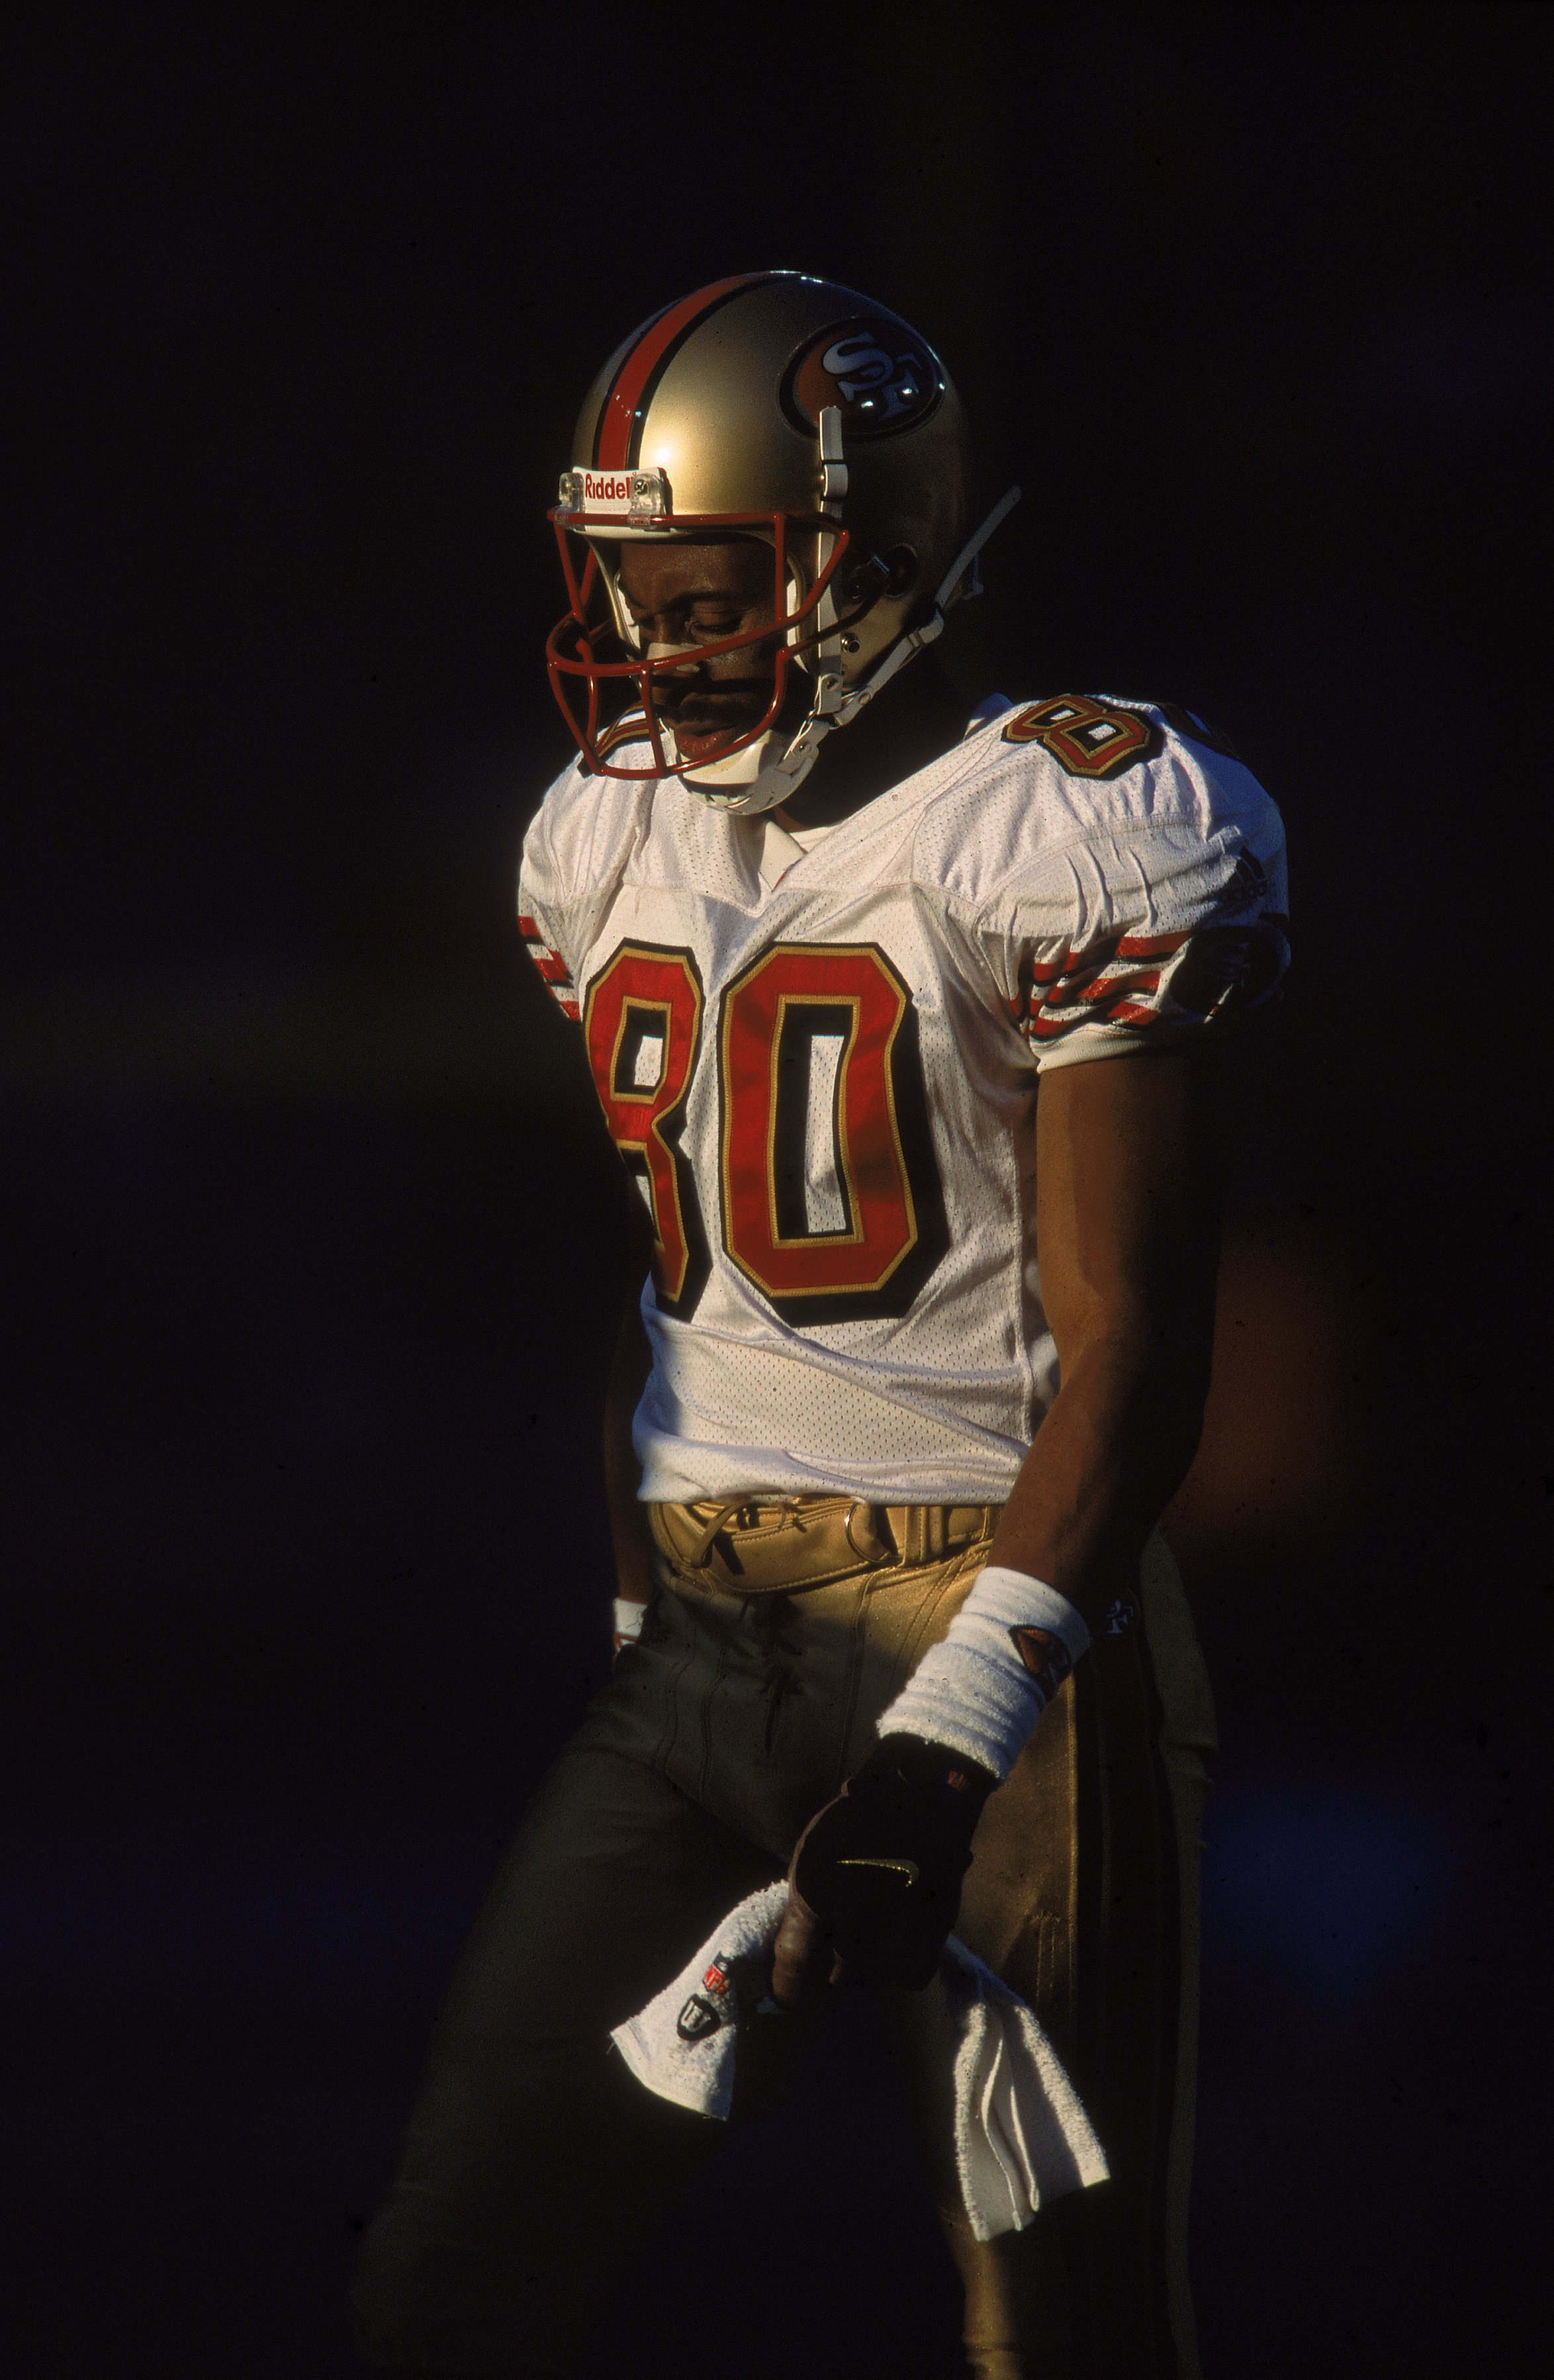 23 Dec 2000:  Jerry Rice #80 of the San Francisco 49ers walks and looks down during the game against the Denver Broncos at the Mile High Stadium in Denver, Colorado. The Broncos defeated the 49ers 38-9.Mandatory Credit: Brian Bahr  /Allsport